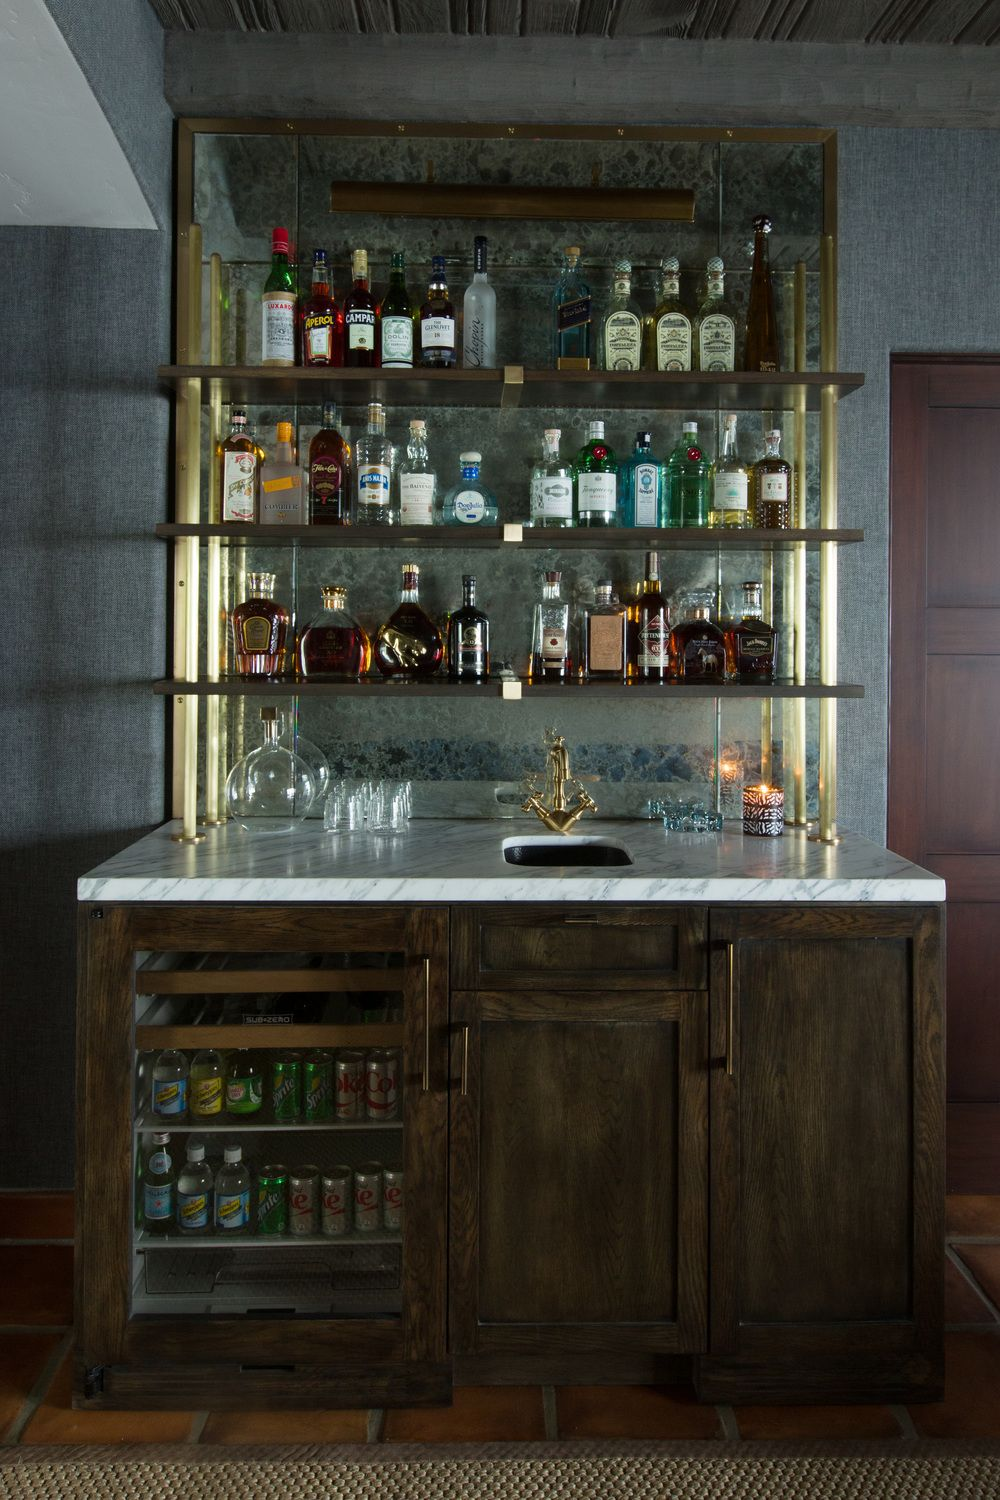 pin bungalow design home bars bar shelves glass floating designs wine shelf wall towel rod with inch sinks drawers white for shoes wooden corner antique industrial storage desk